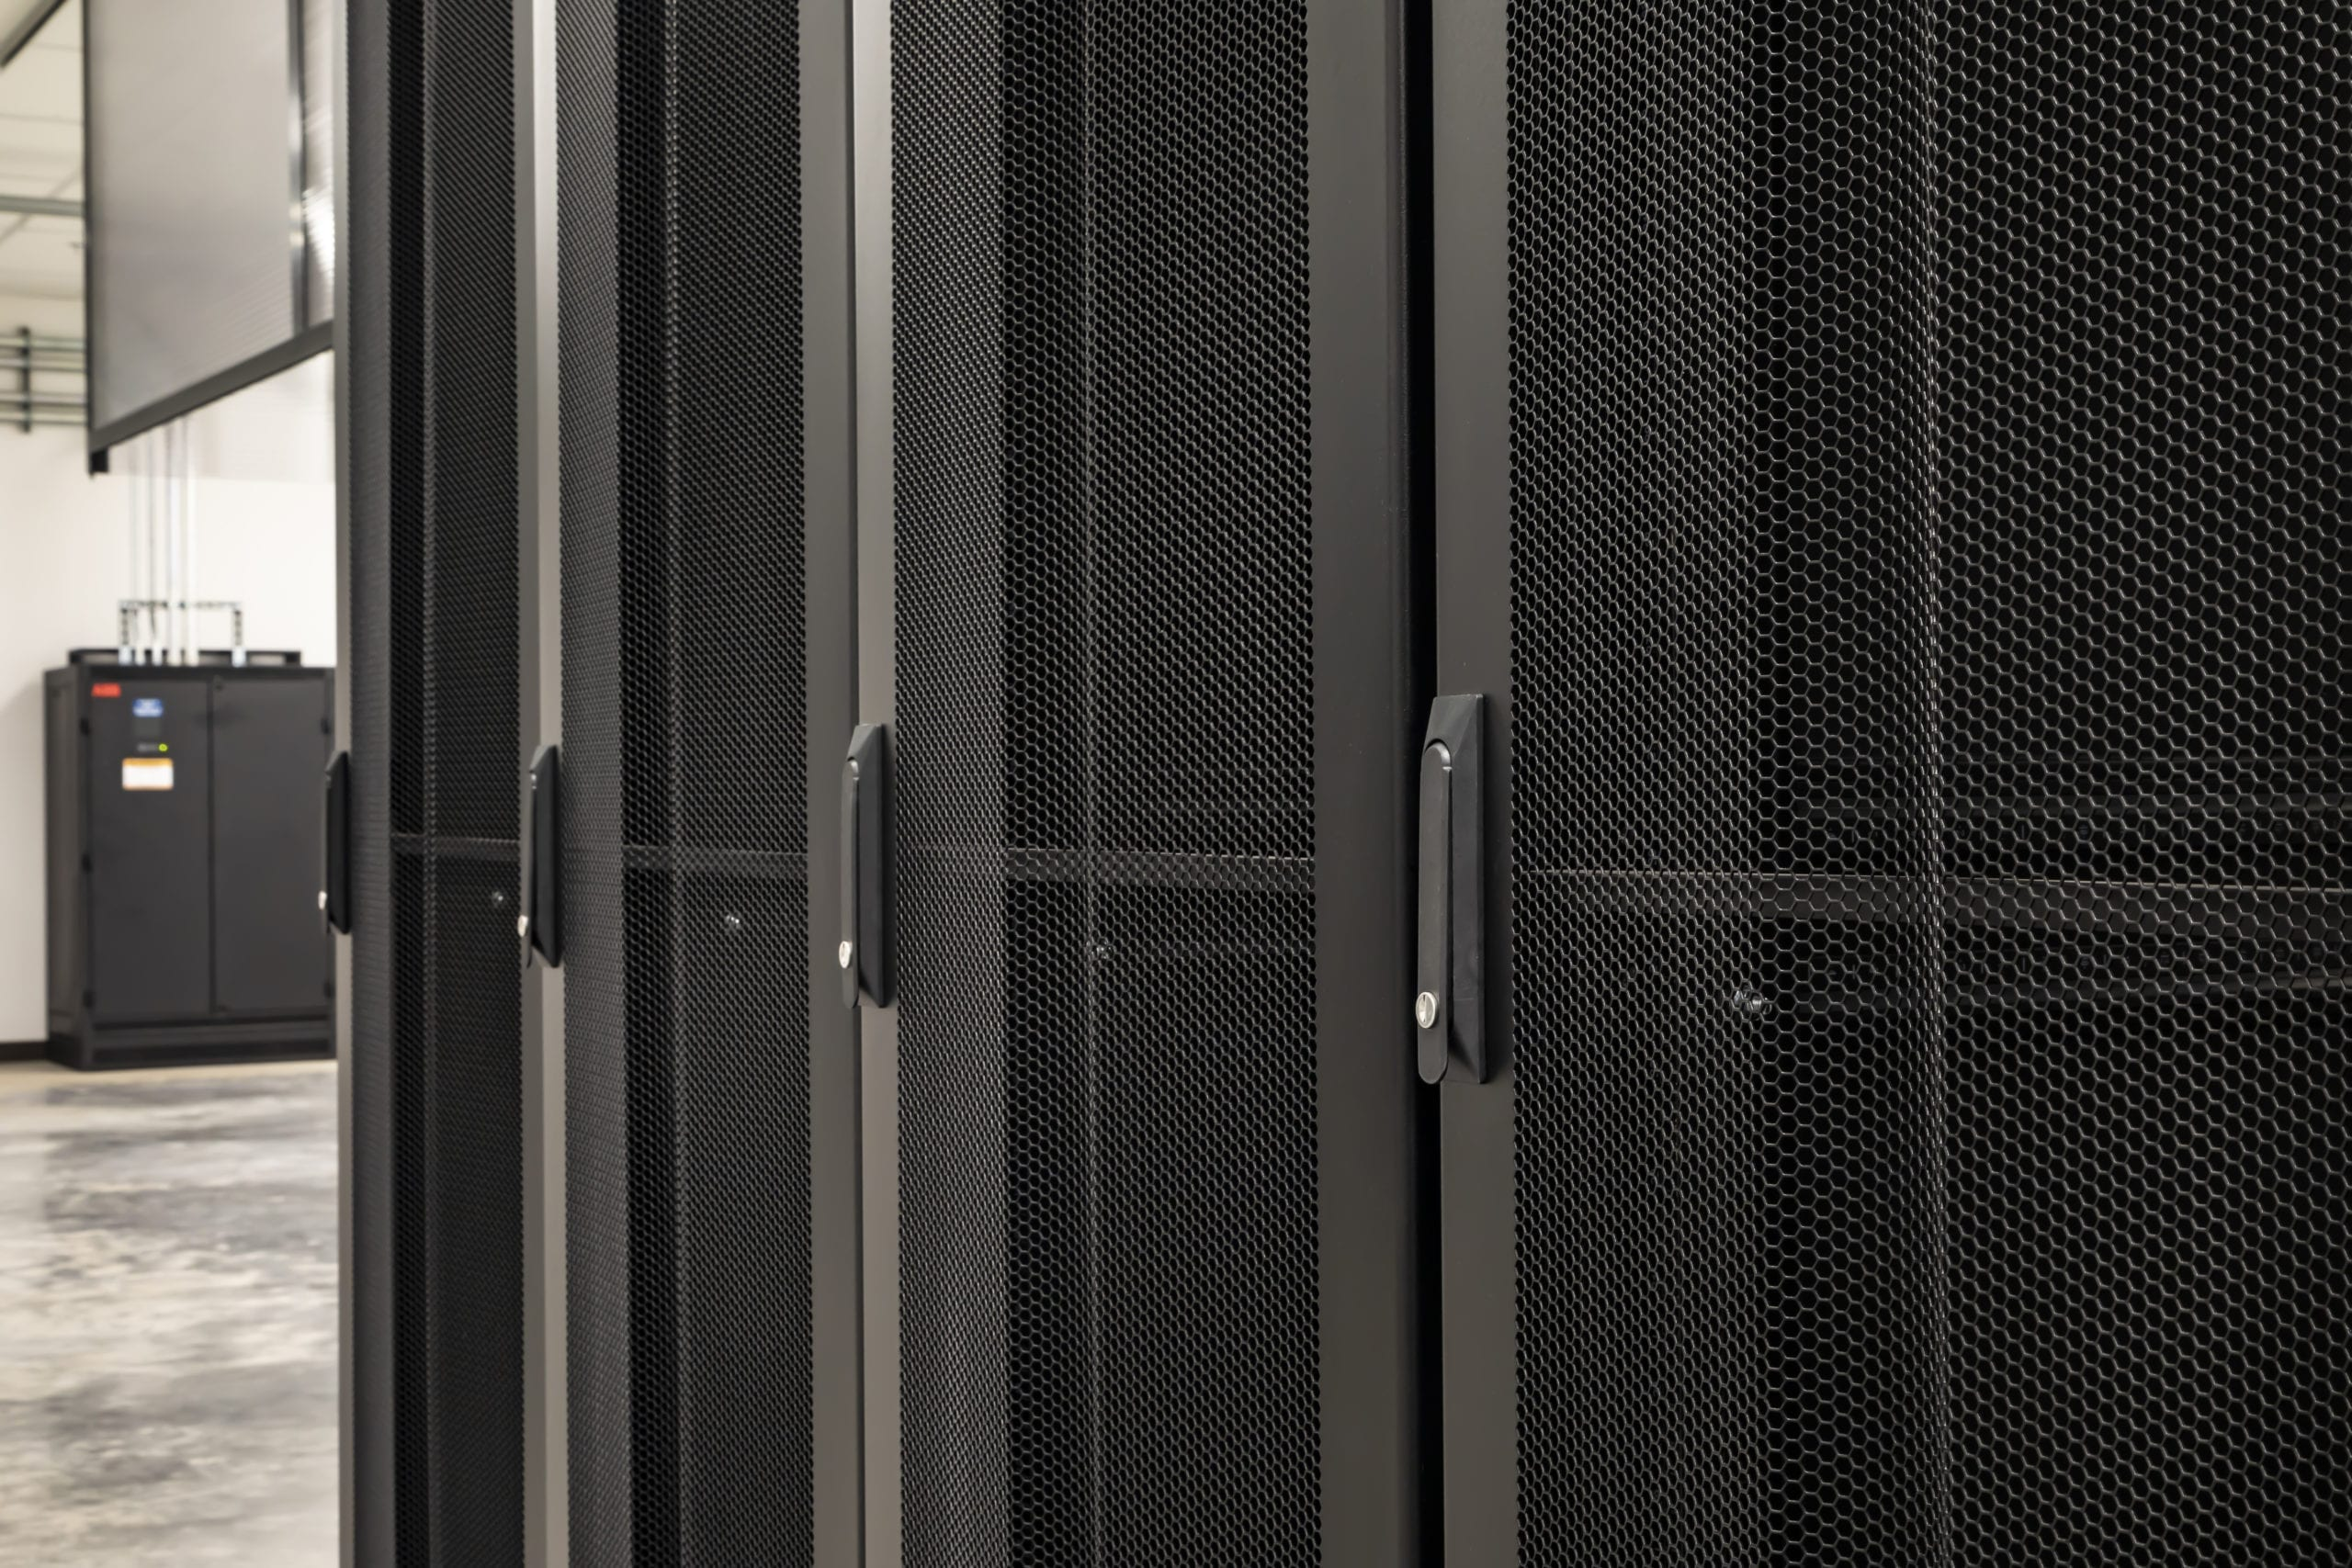 Server Cages In Data Center